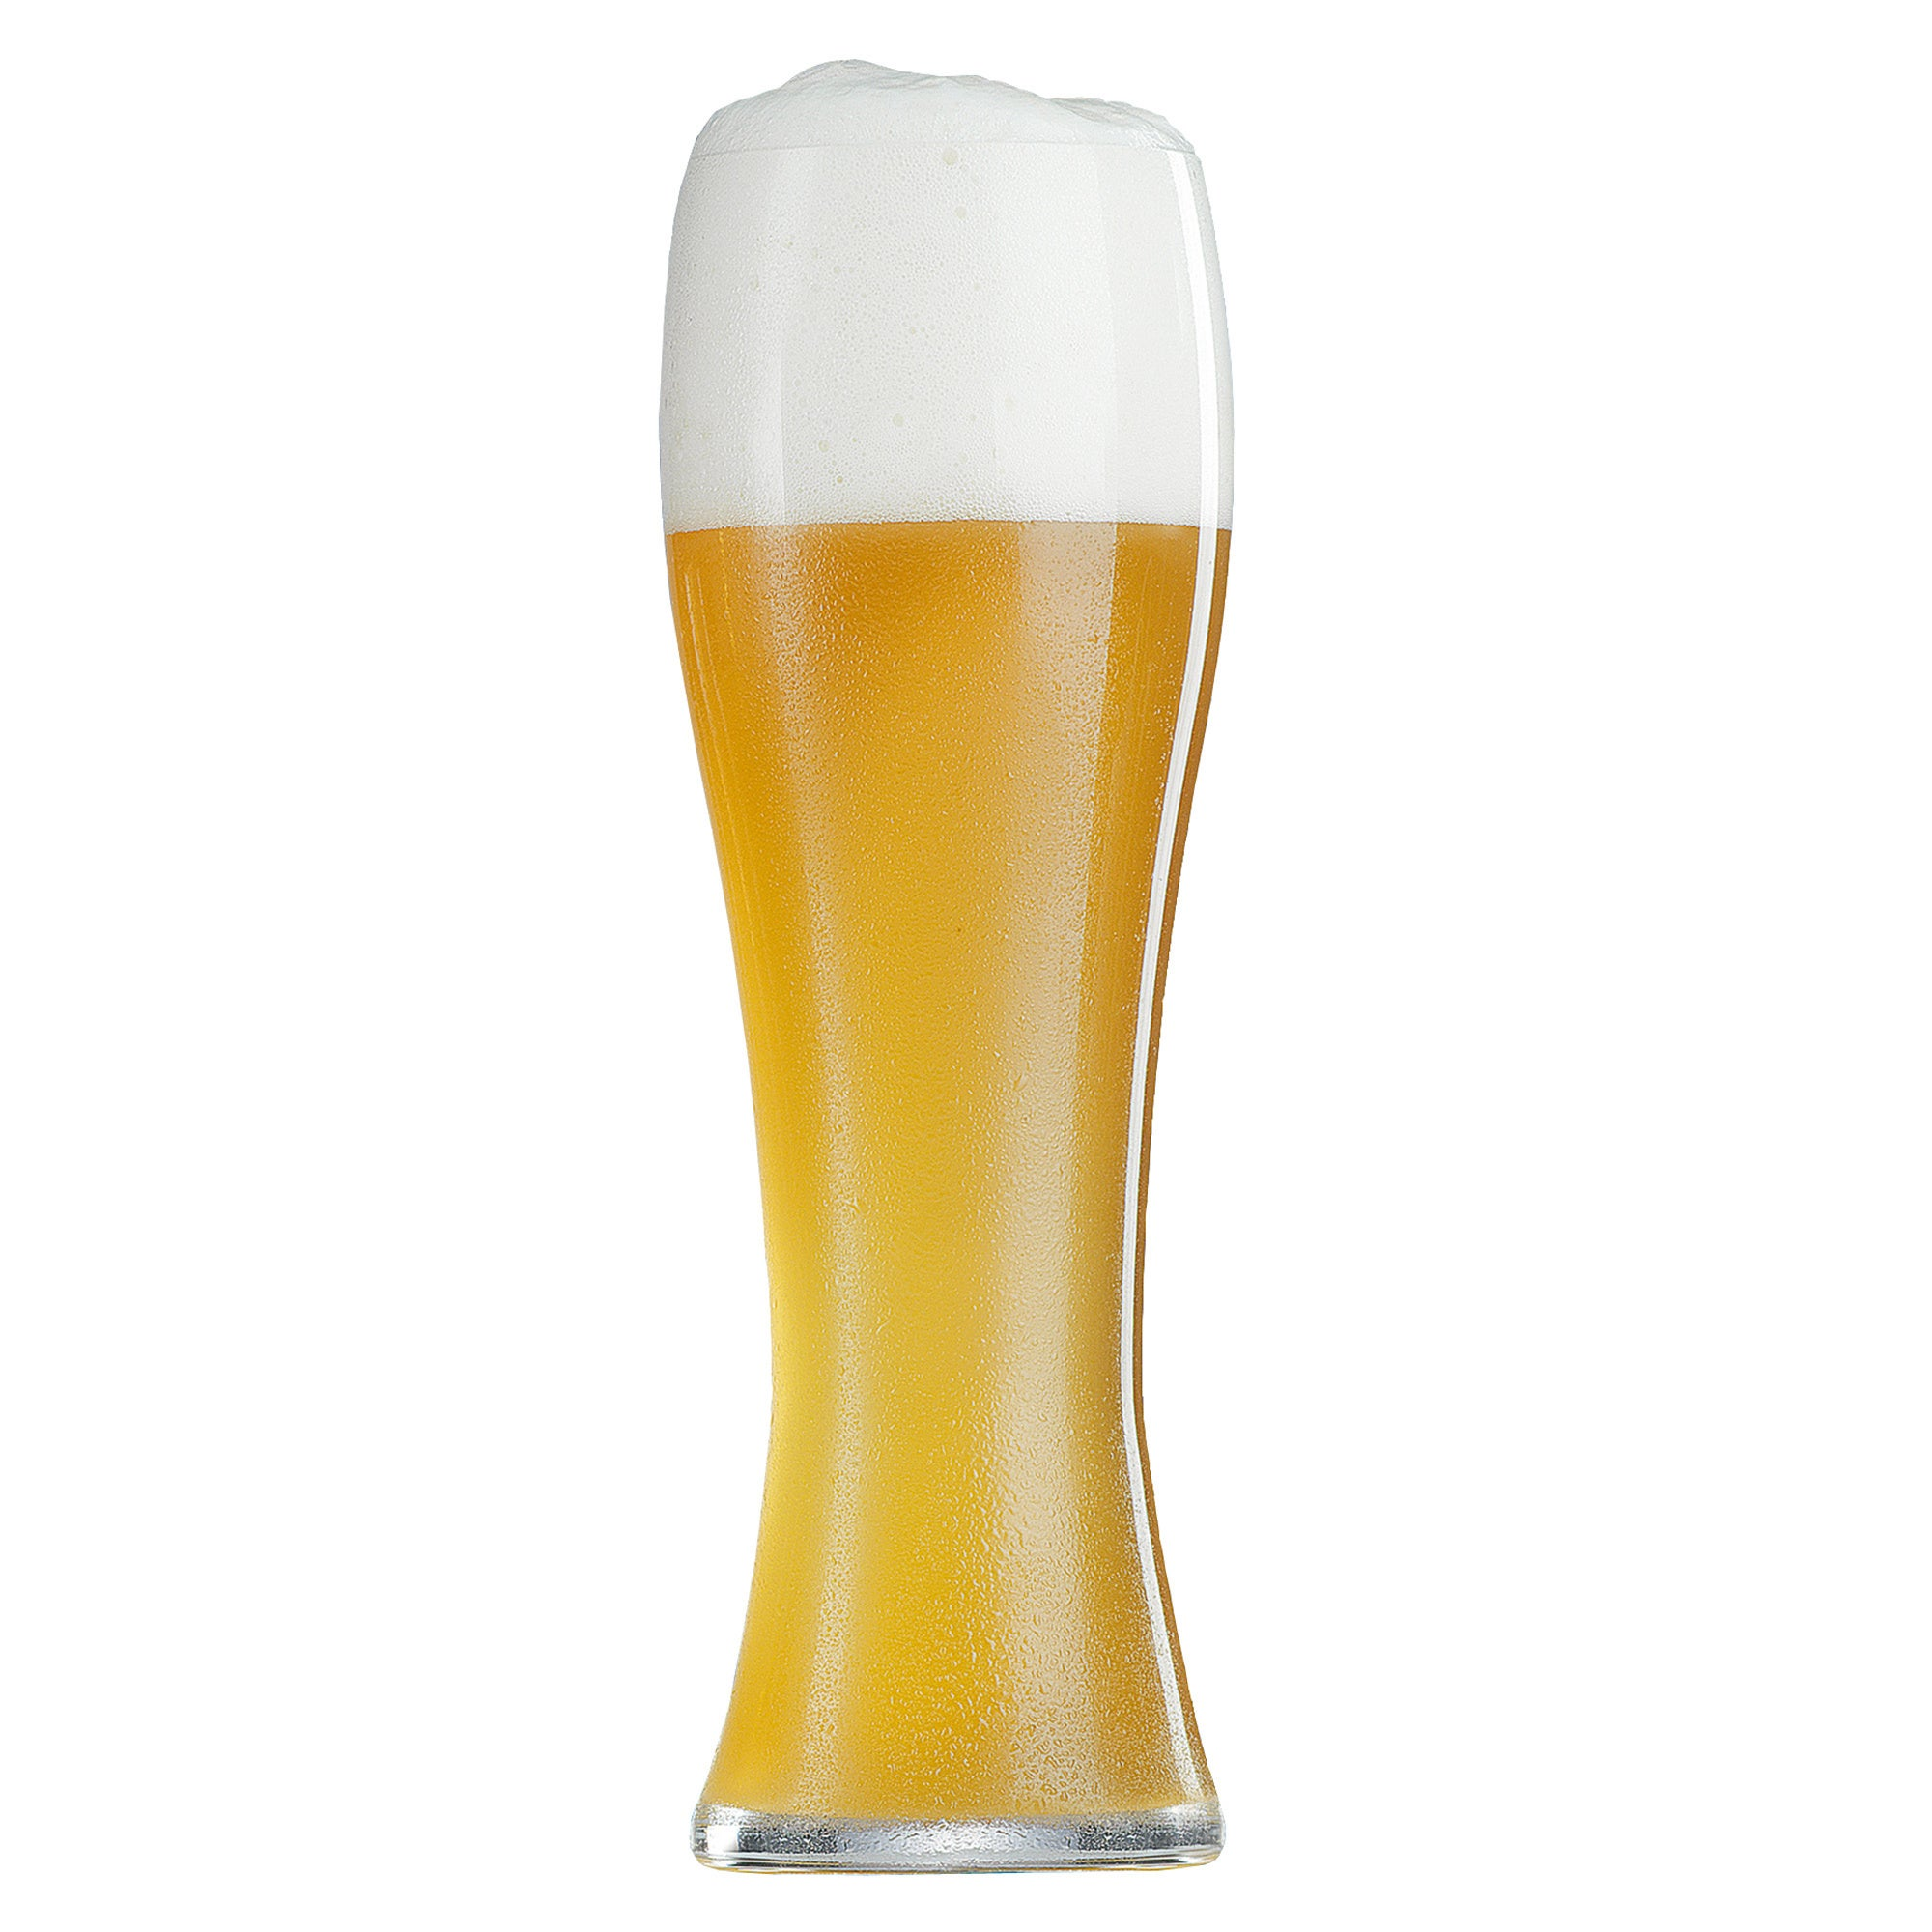 Spiegelau Beer Classics Stemmed Wheat Beer Glassware (Set of 4) at Sears.com